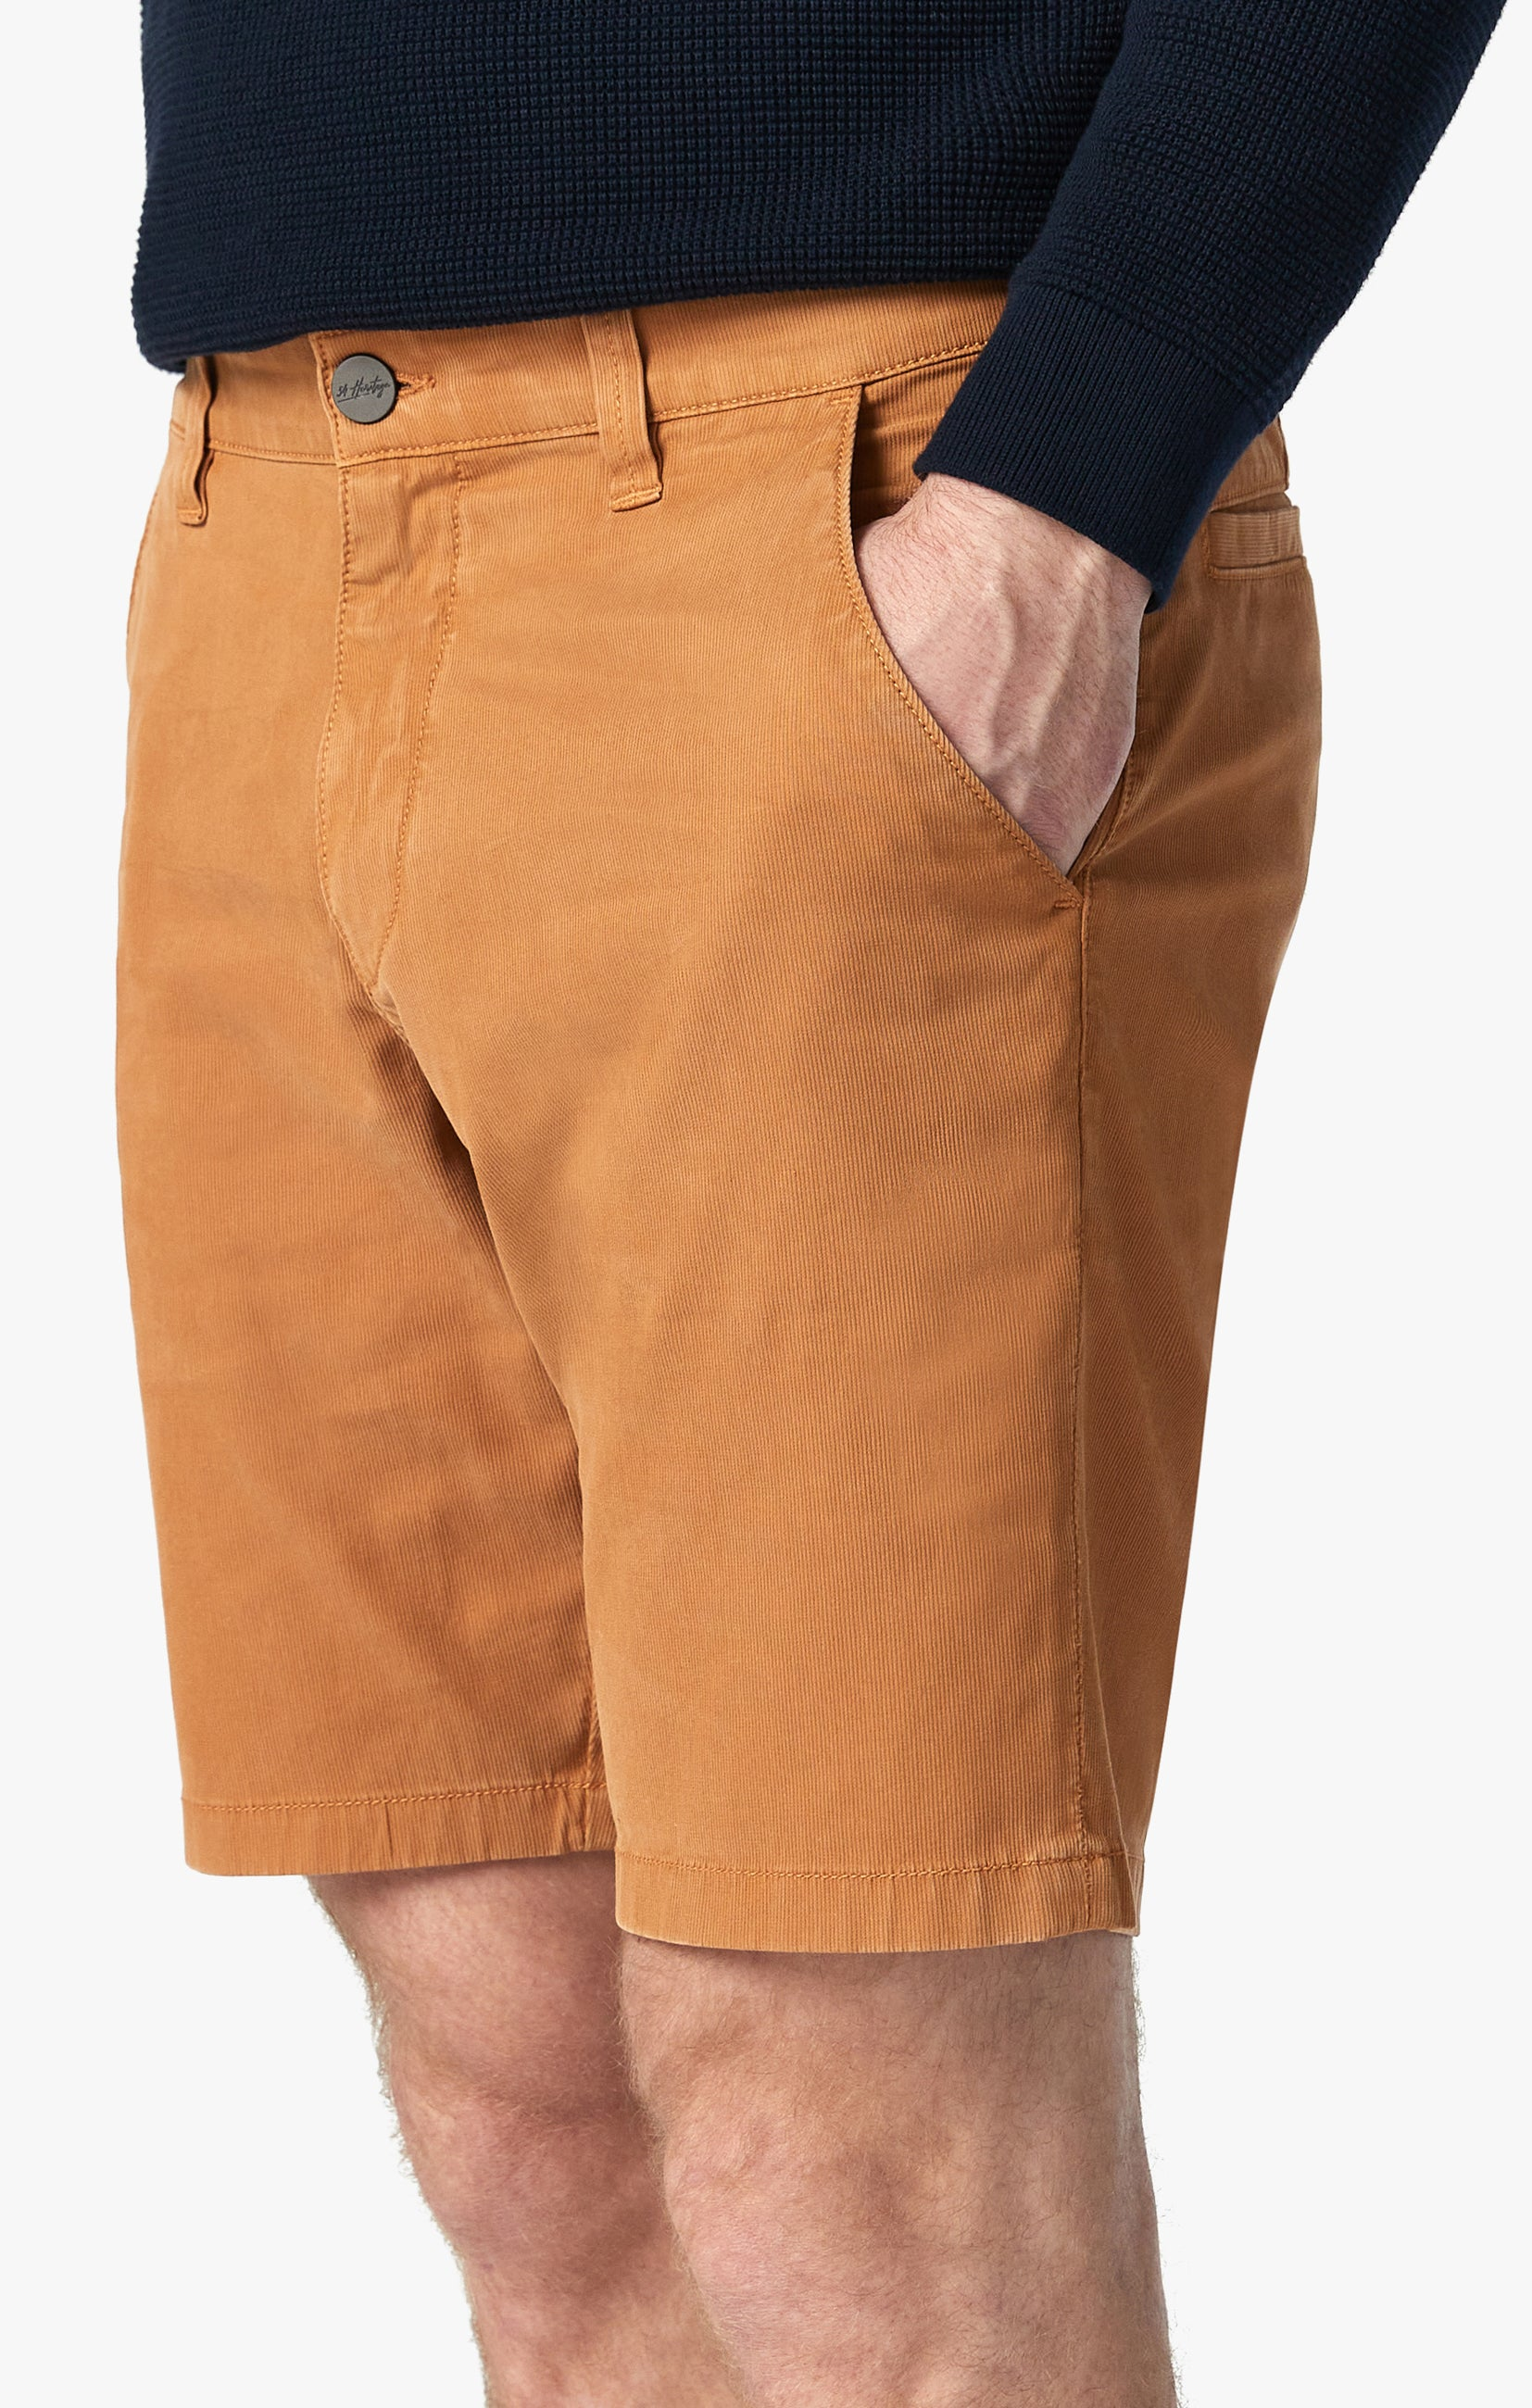 Arizona Shorts in Brown Sugar Fine Touch Image 4